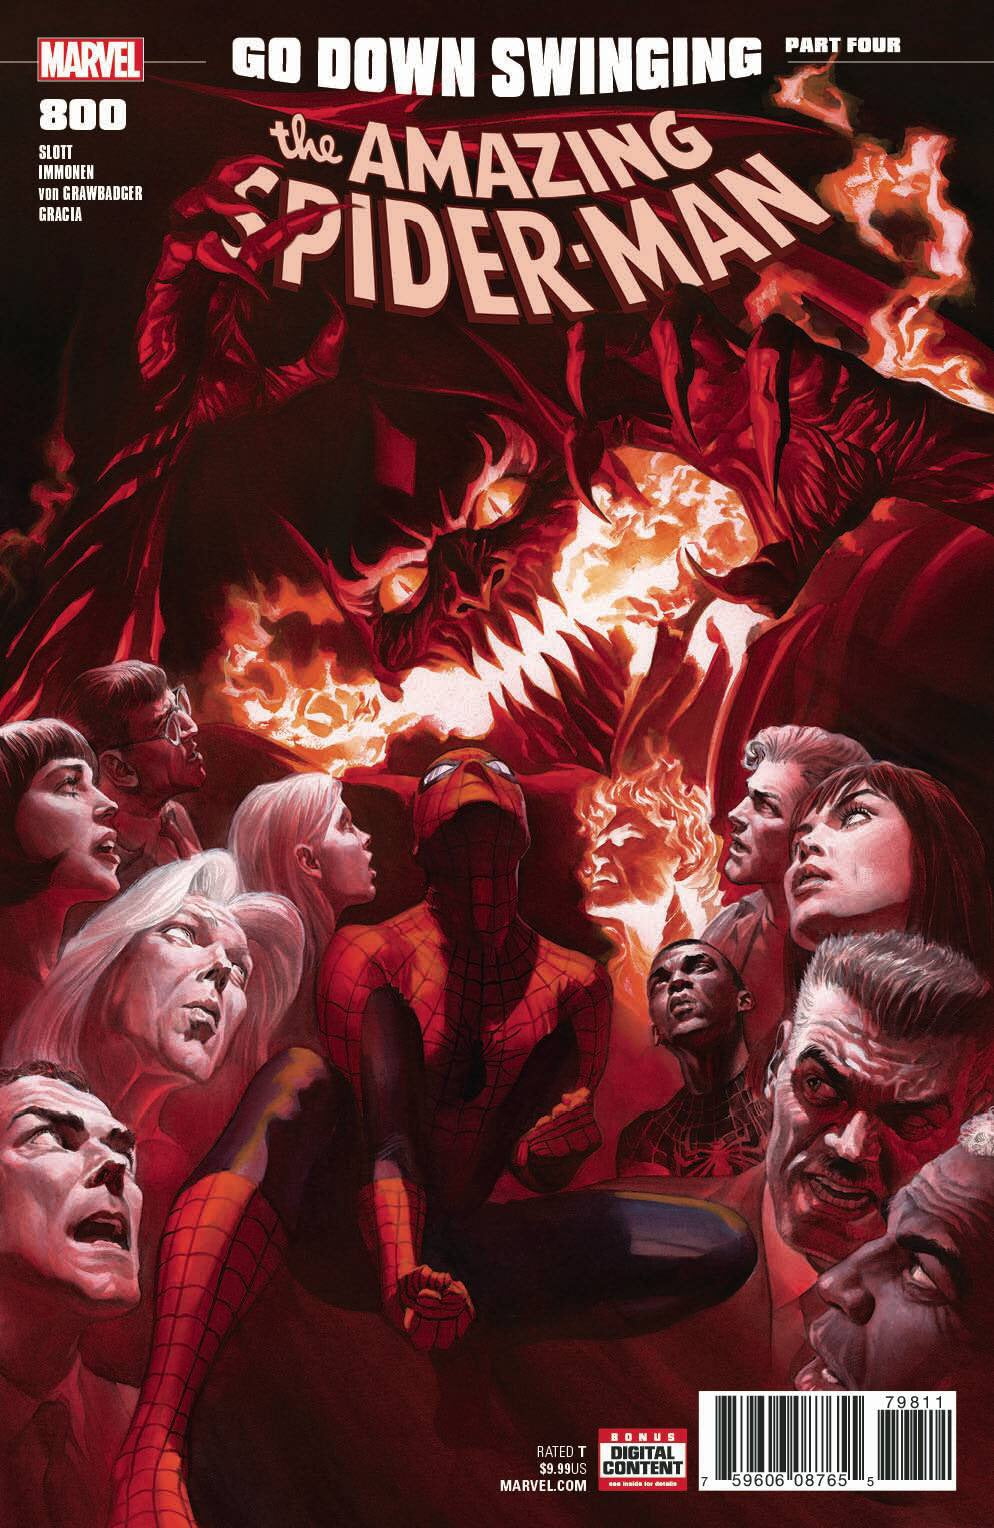 AMAZING SPIDER-MAN #800 LEG ALEX ROSS COVER RELEASE DATE 05/30